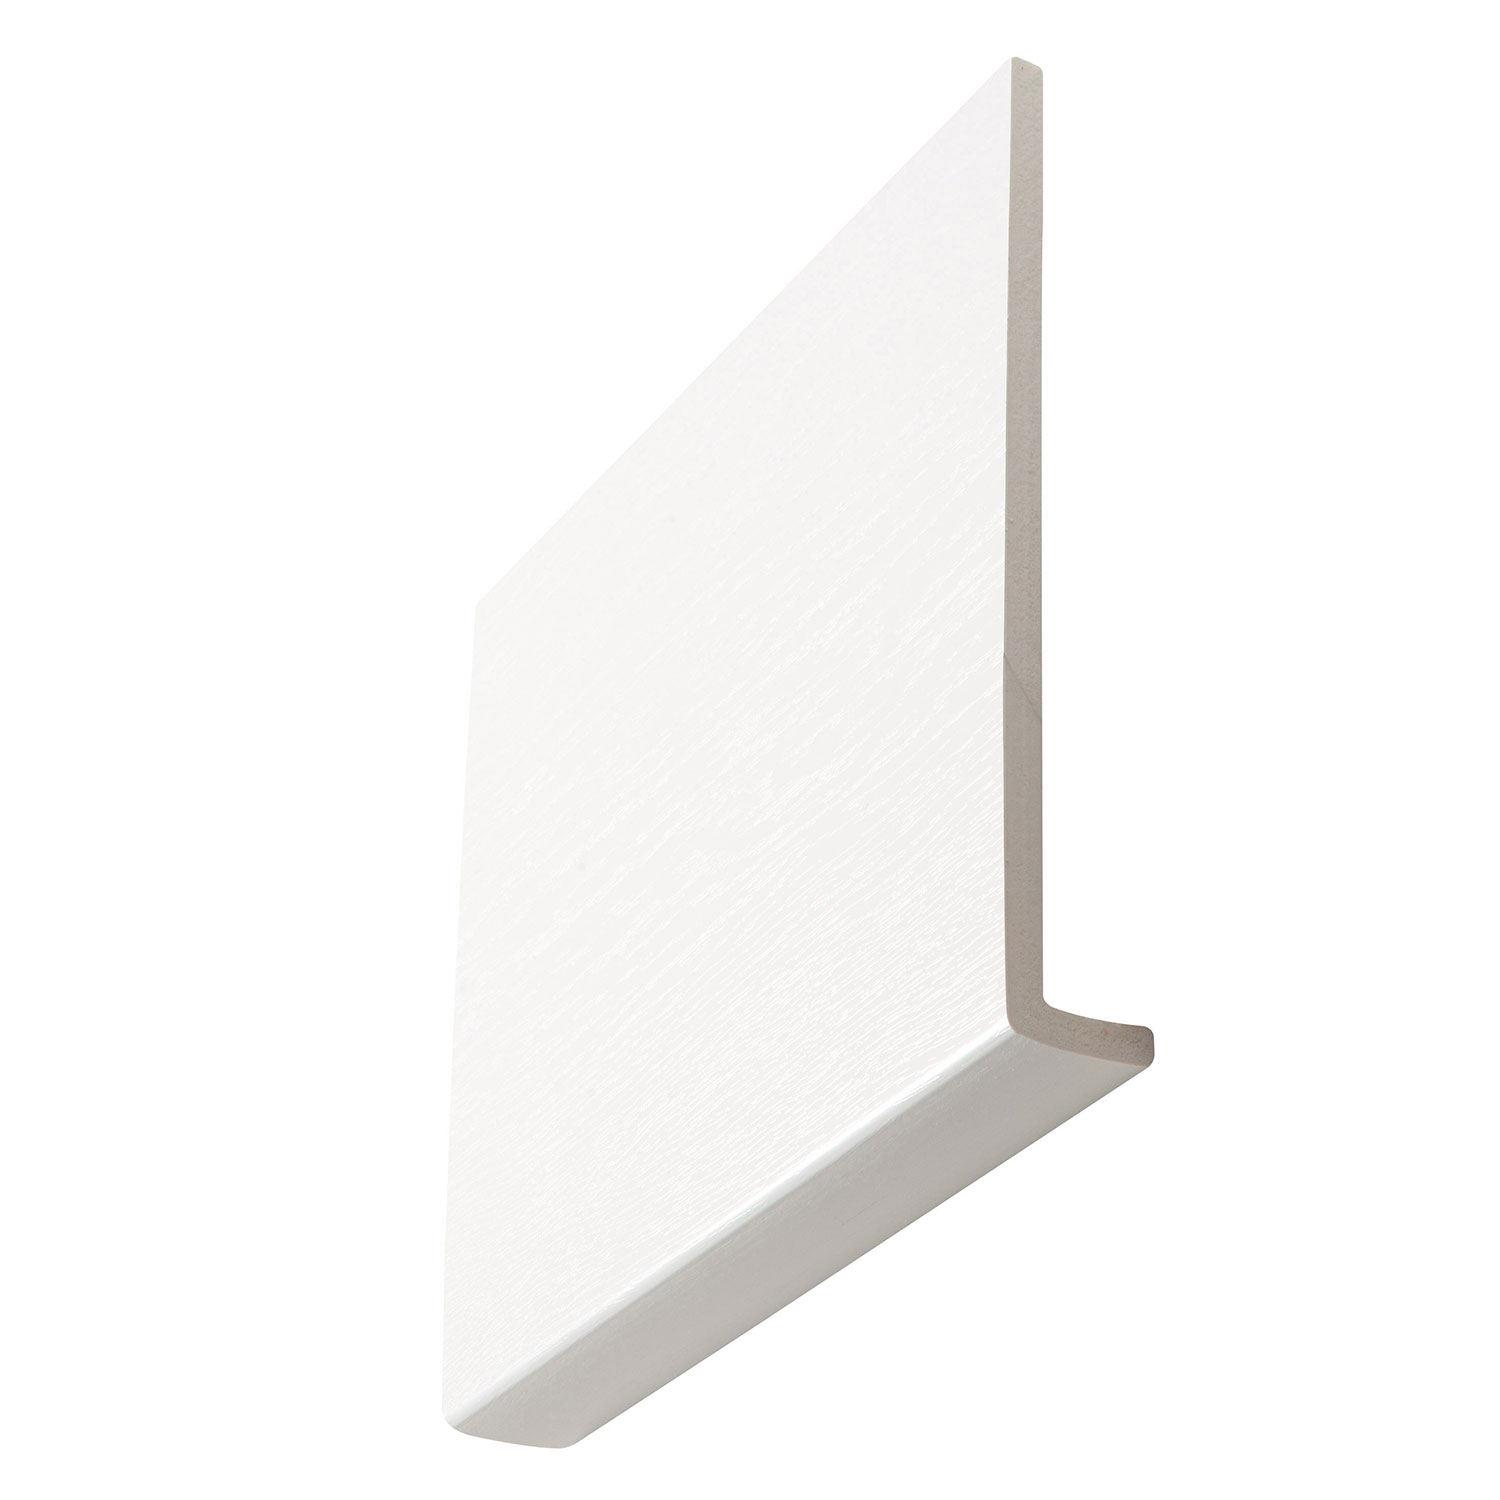 White Woodgrain Fascia Boards